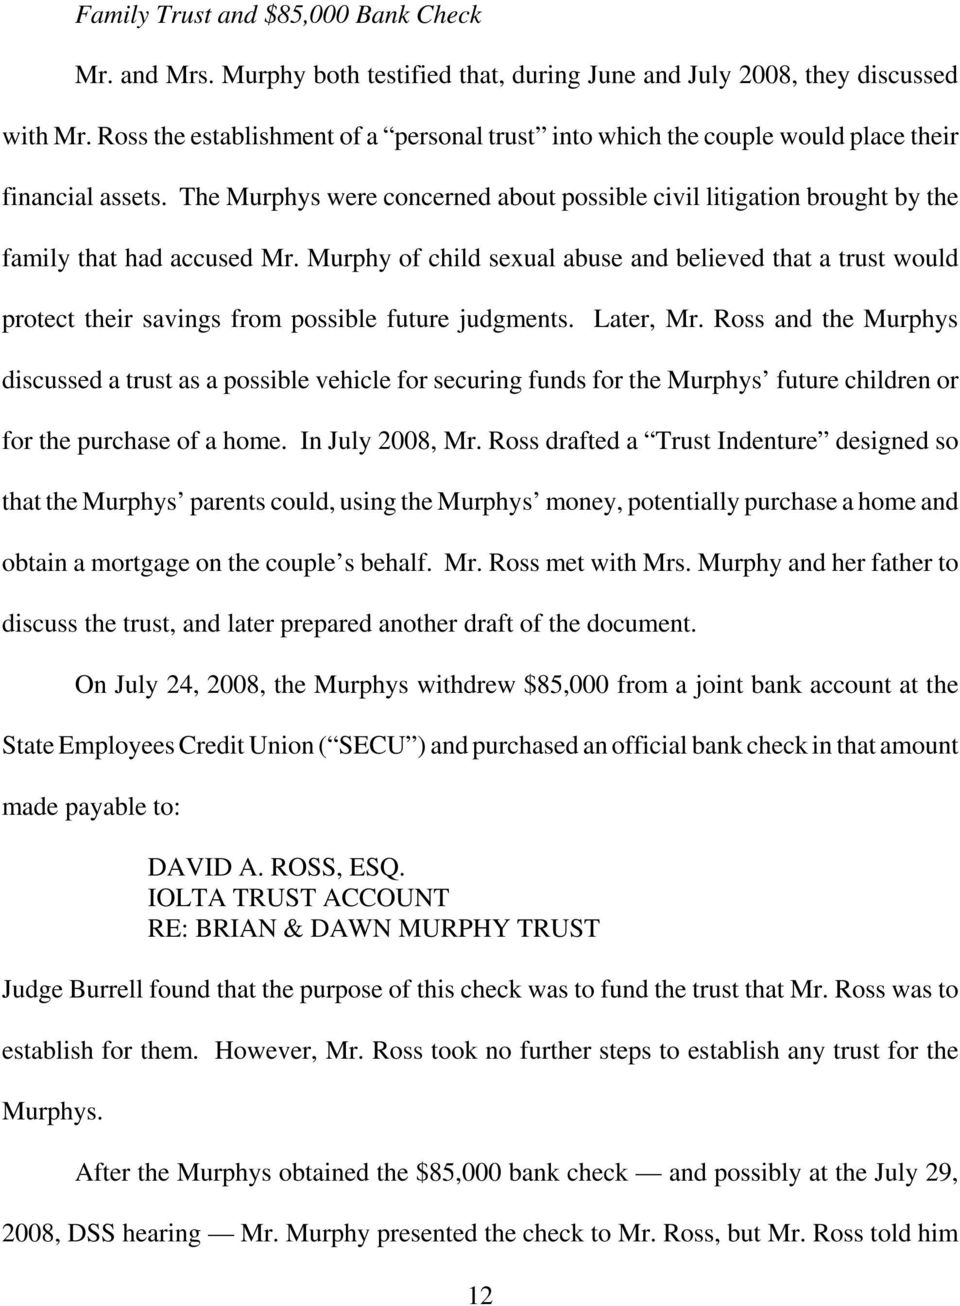 The Murphys were concerned about possible civil litigation brought by the family that had accused Mr.